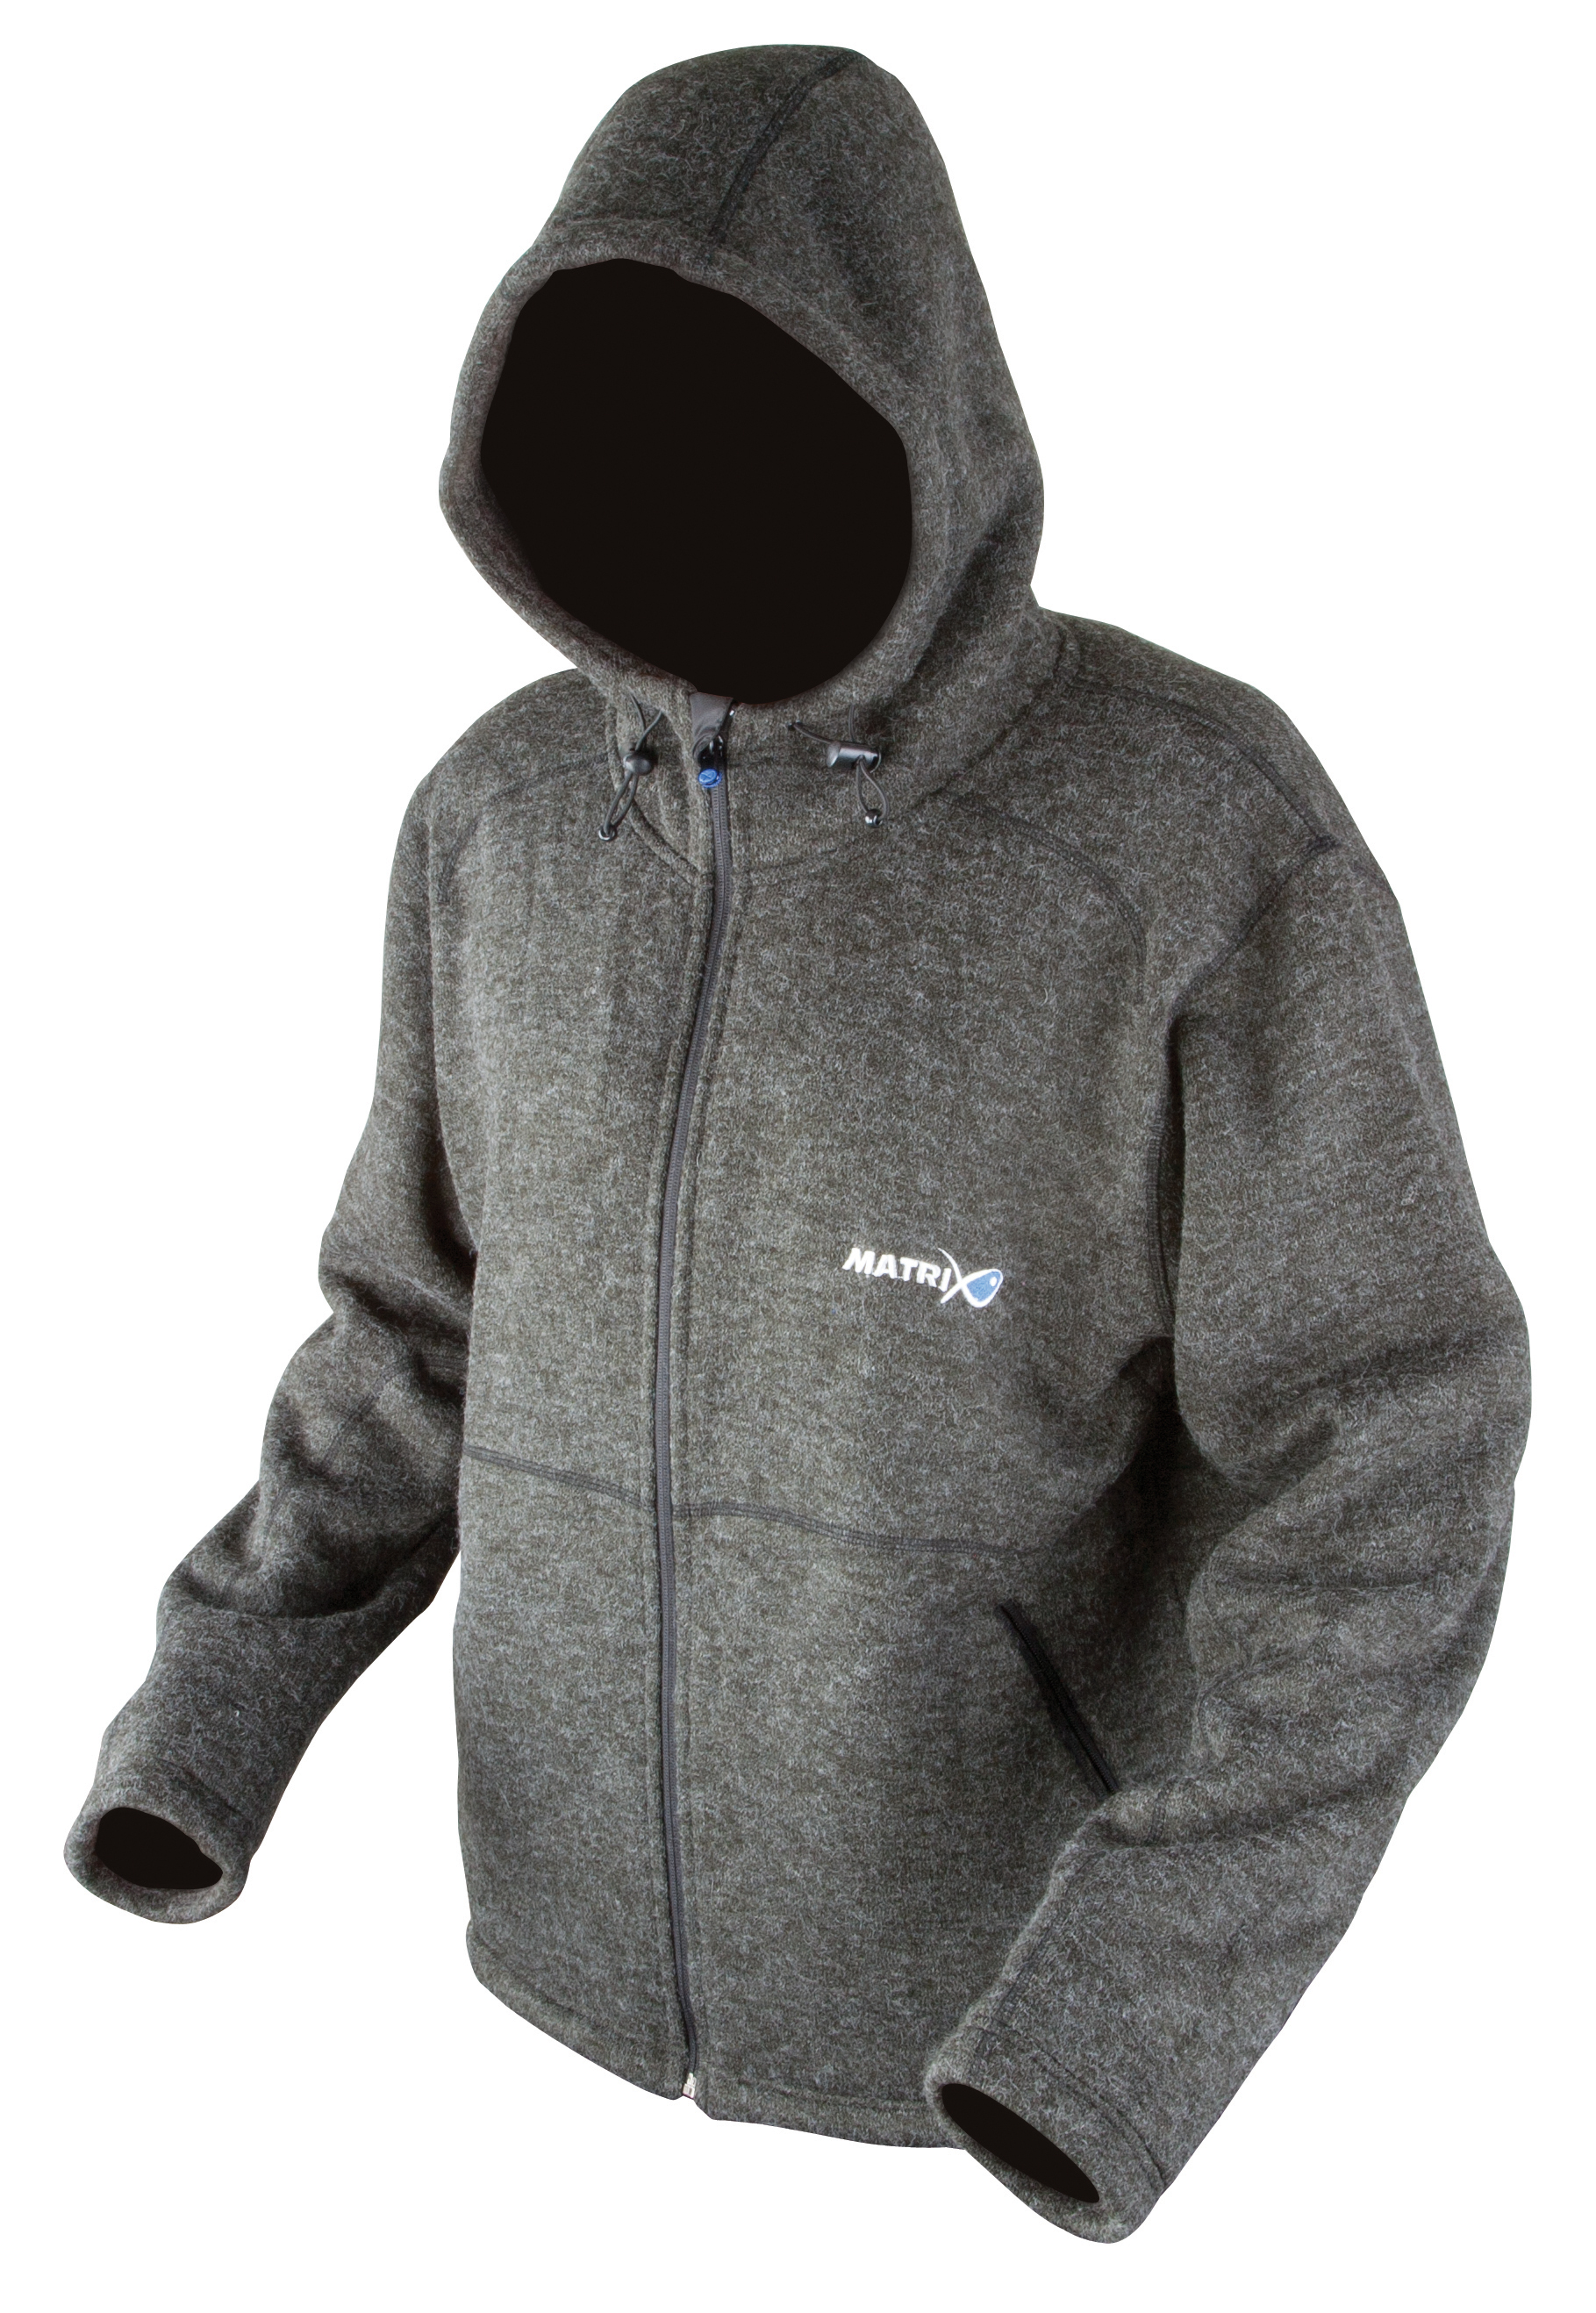 MATRIX WINTER Lined Fleece XXXL